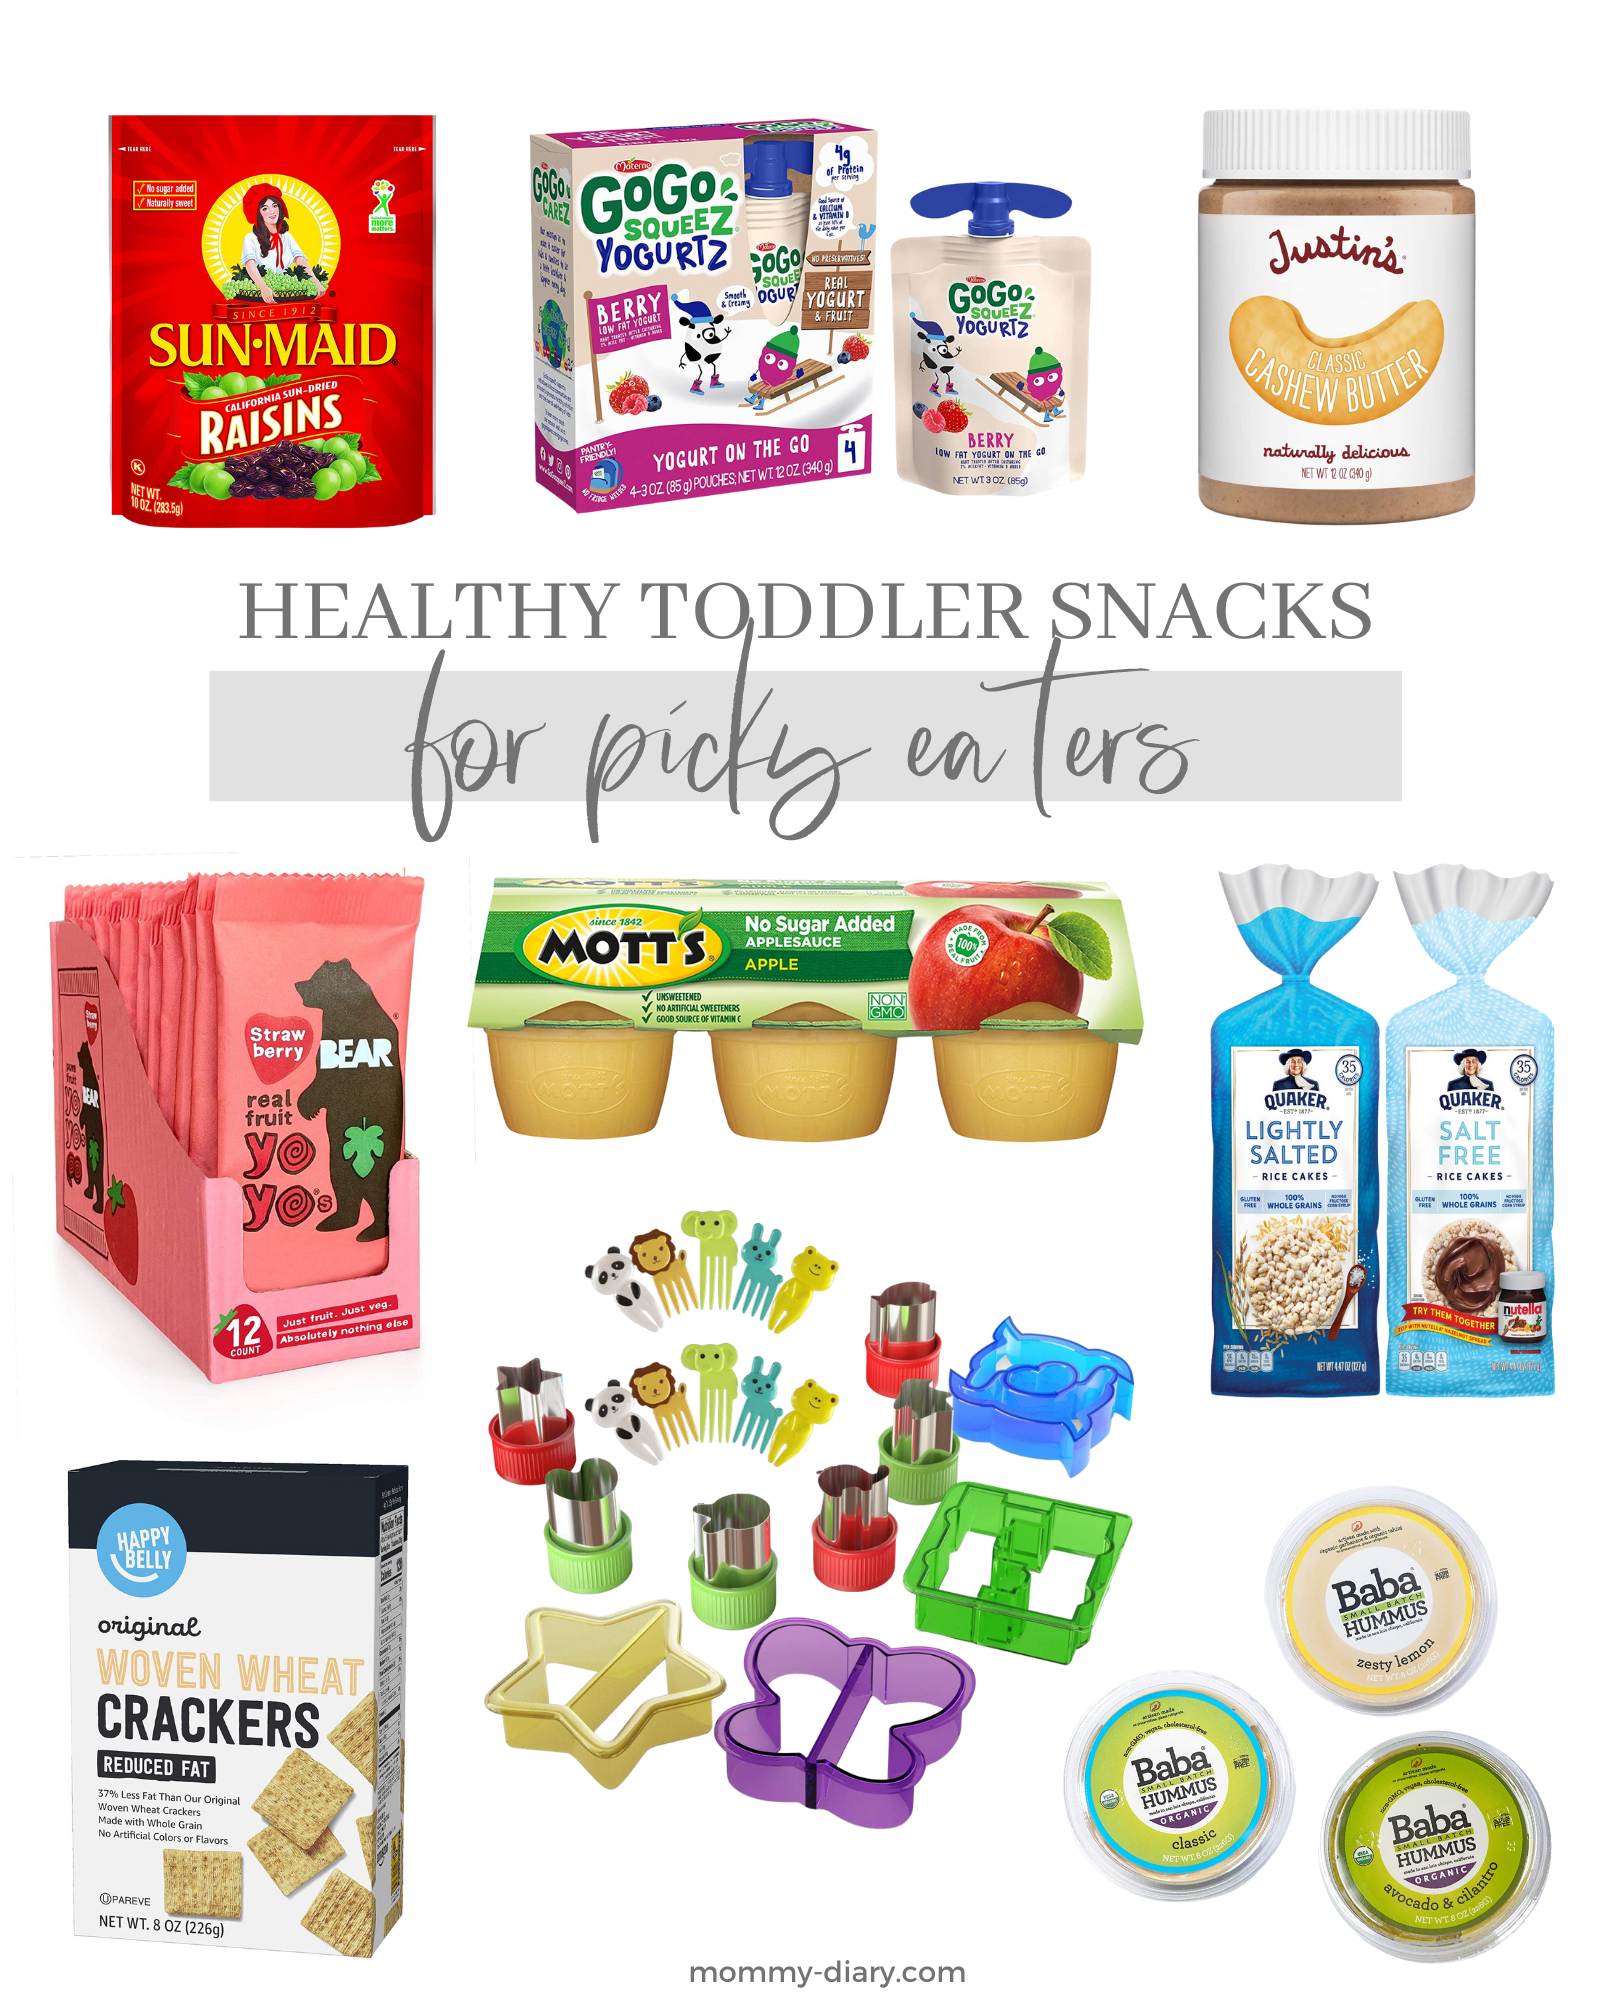 Healthy Toddler Snacks for Picky Eaters